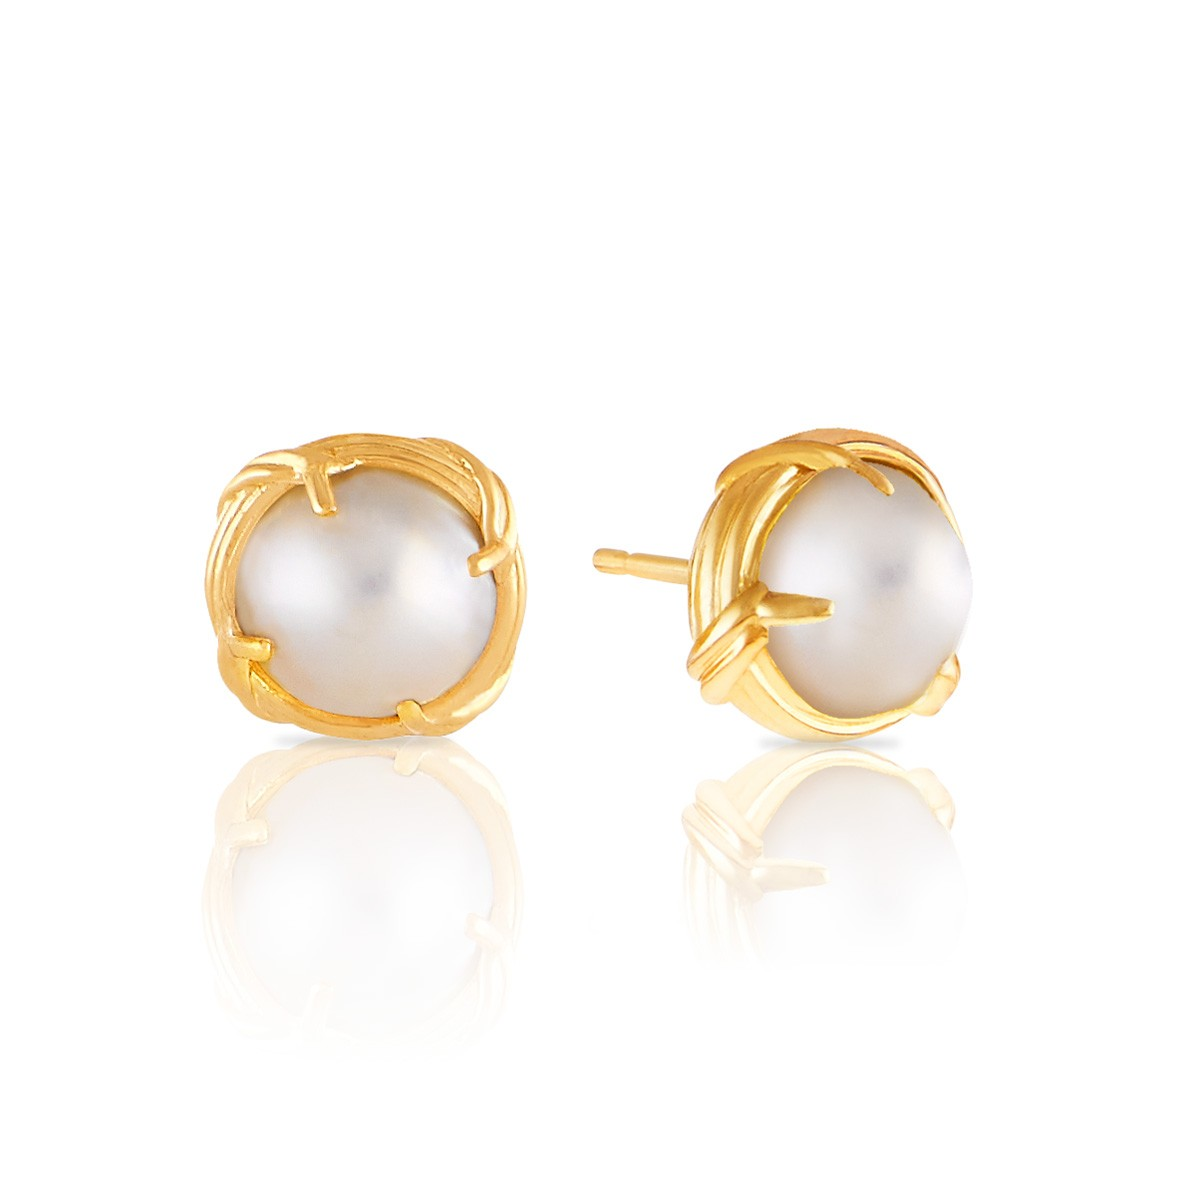 Peter Thomas Roth Ribbon And Reed Heritage Mabe Pearl Stud Earrings In 18k Yellow Gold 10mm